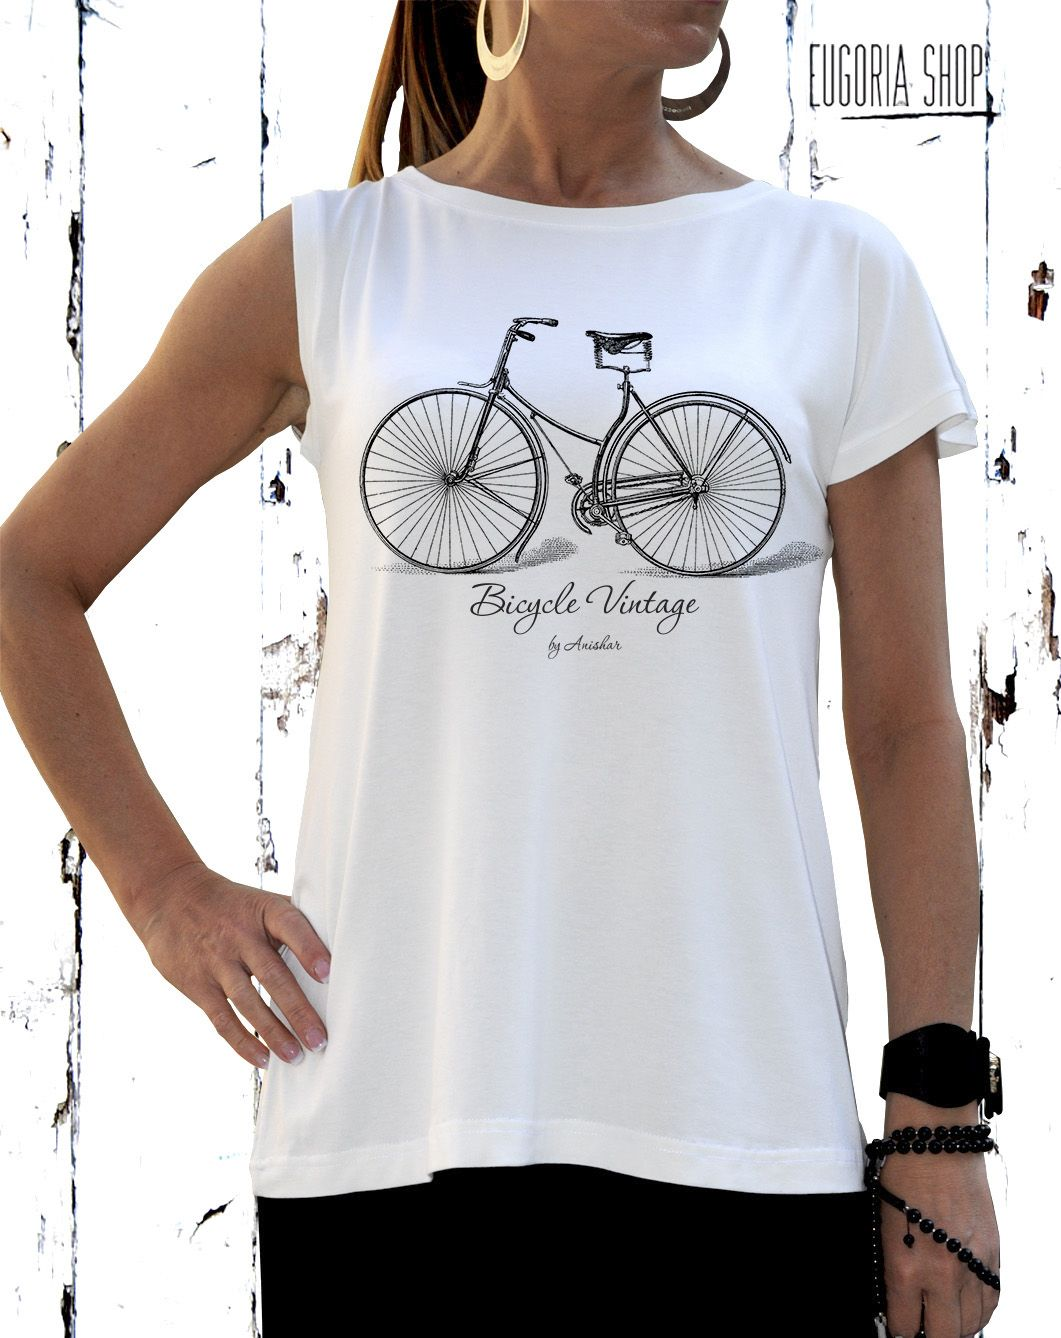 Unisex Bicycle T-shirt / Hand Screen Printed / Unisex Design ...